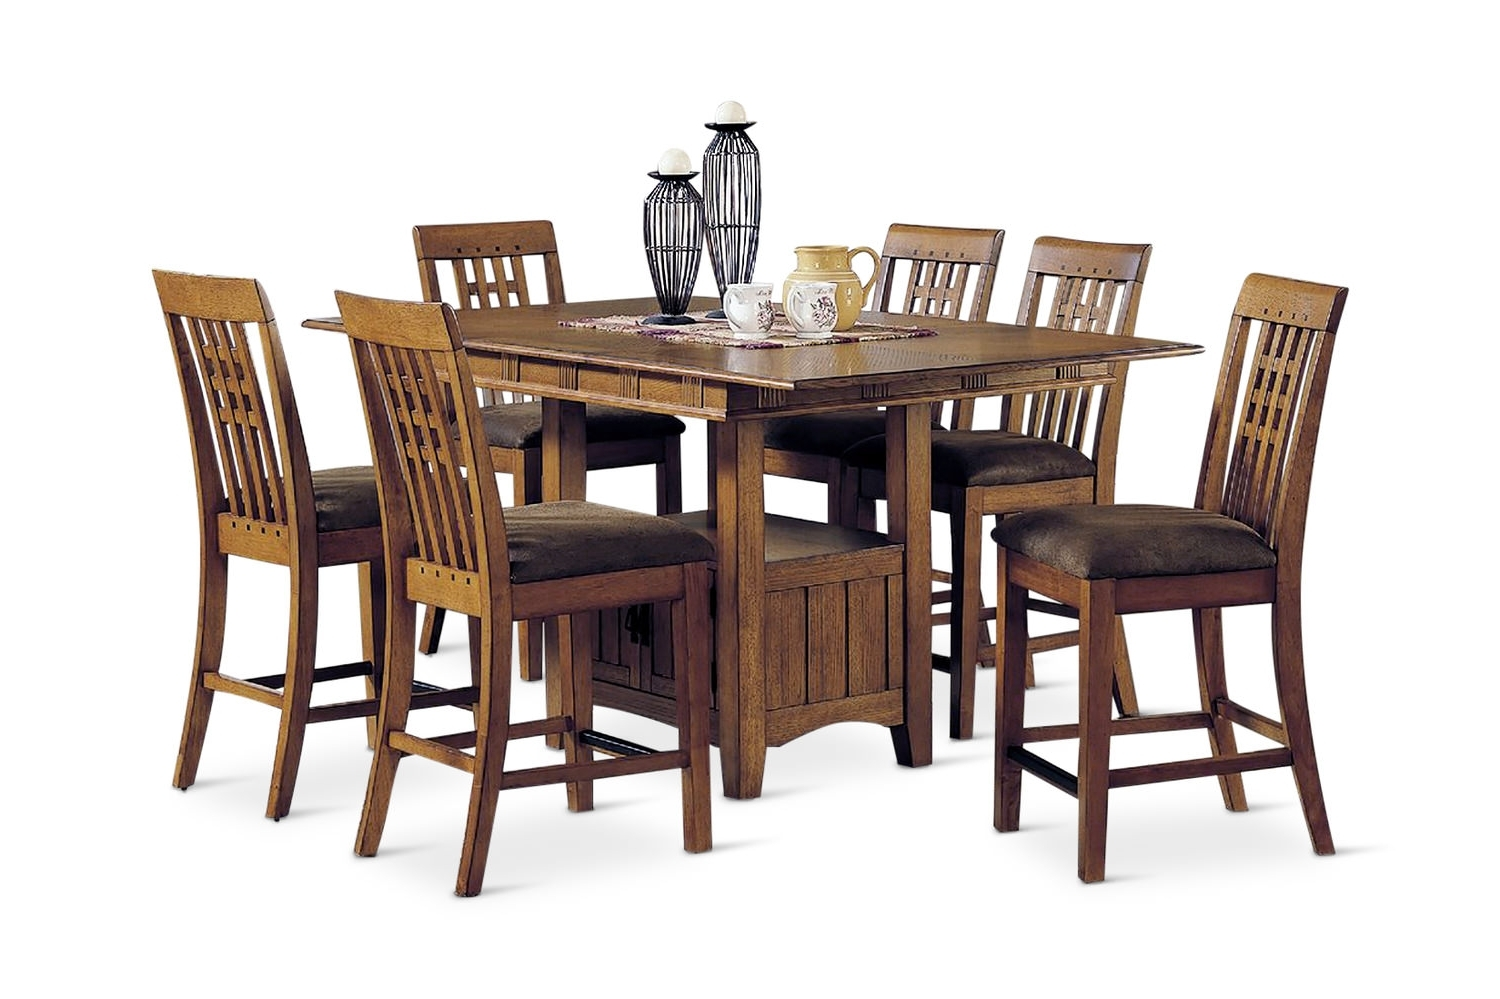 Current Chapleau Ii 9 Piece Extension Dining Table Sets Regarding Dining Sets – Kitchen & Dining Room Sets – Hom Furniture (View 20 of 25)